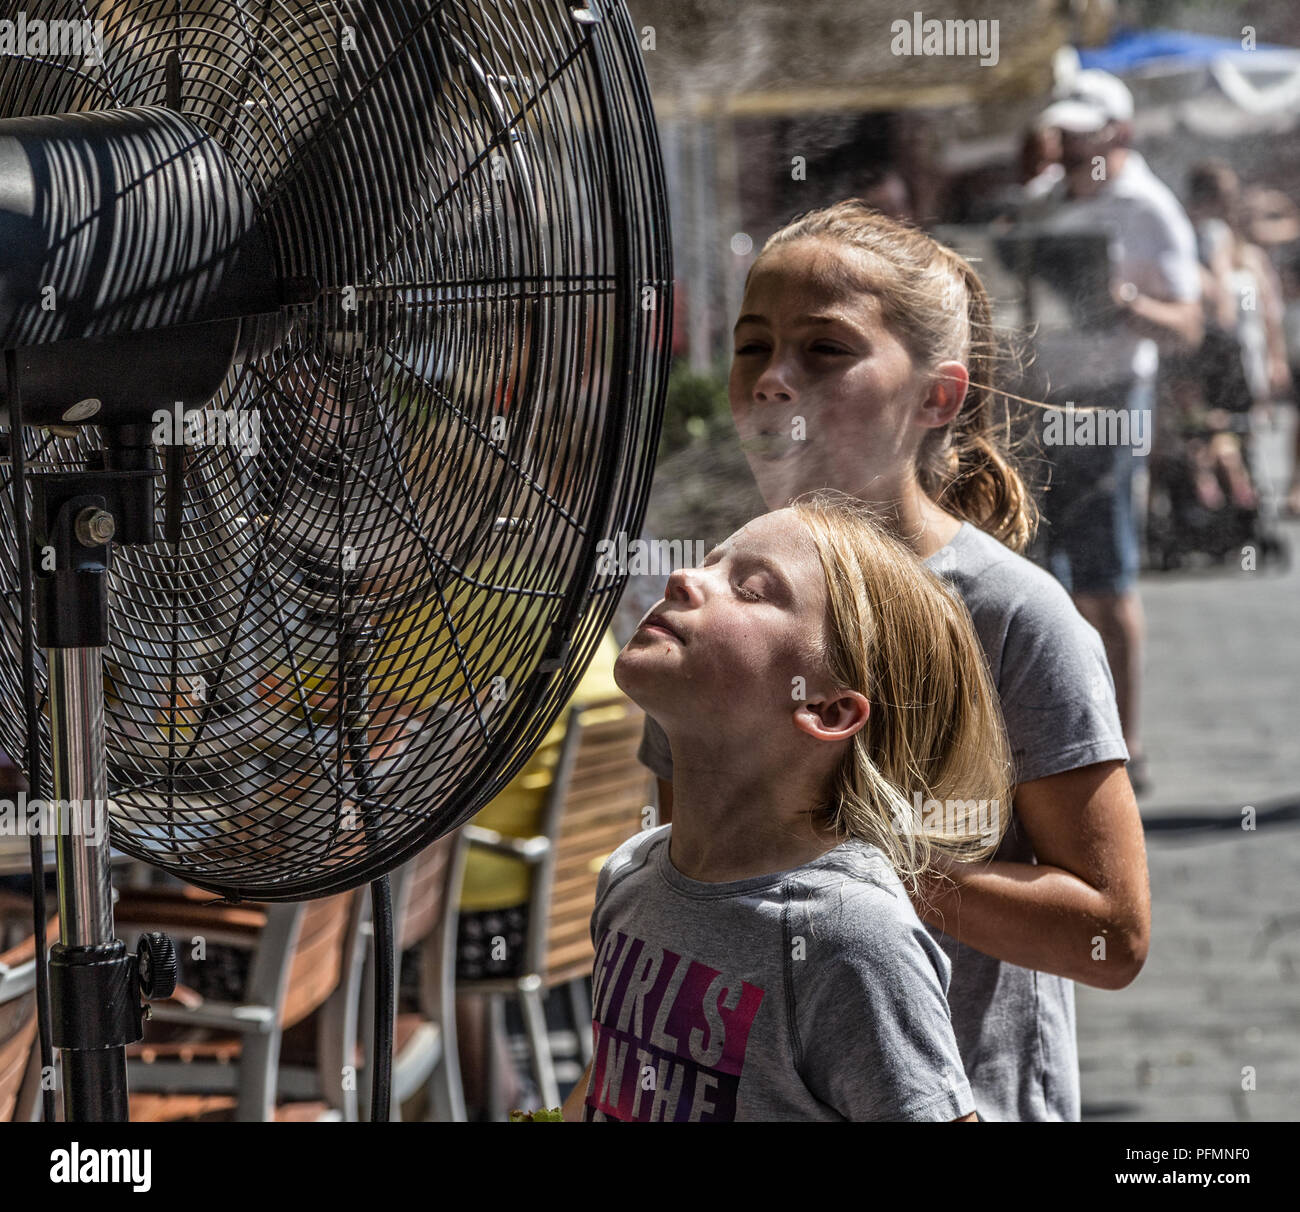 BUDAPEST,HUNGARY-AUGUST 09,2018:People alleviate the summer heat wave in front of the water spraying fan at the street of downtown. Stock Photo